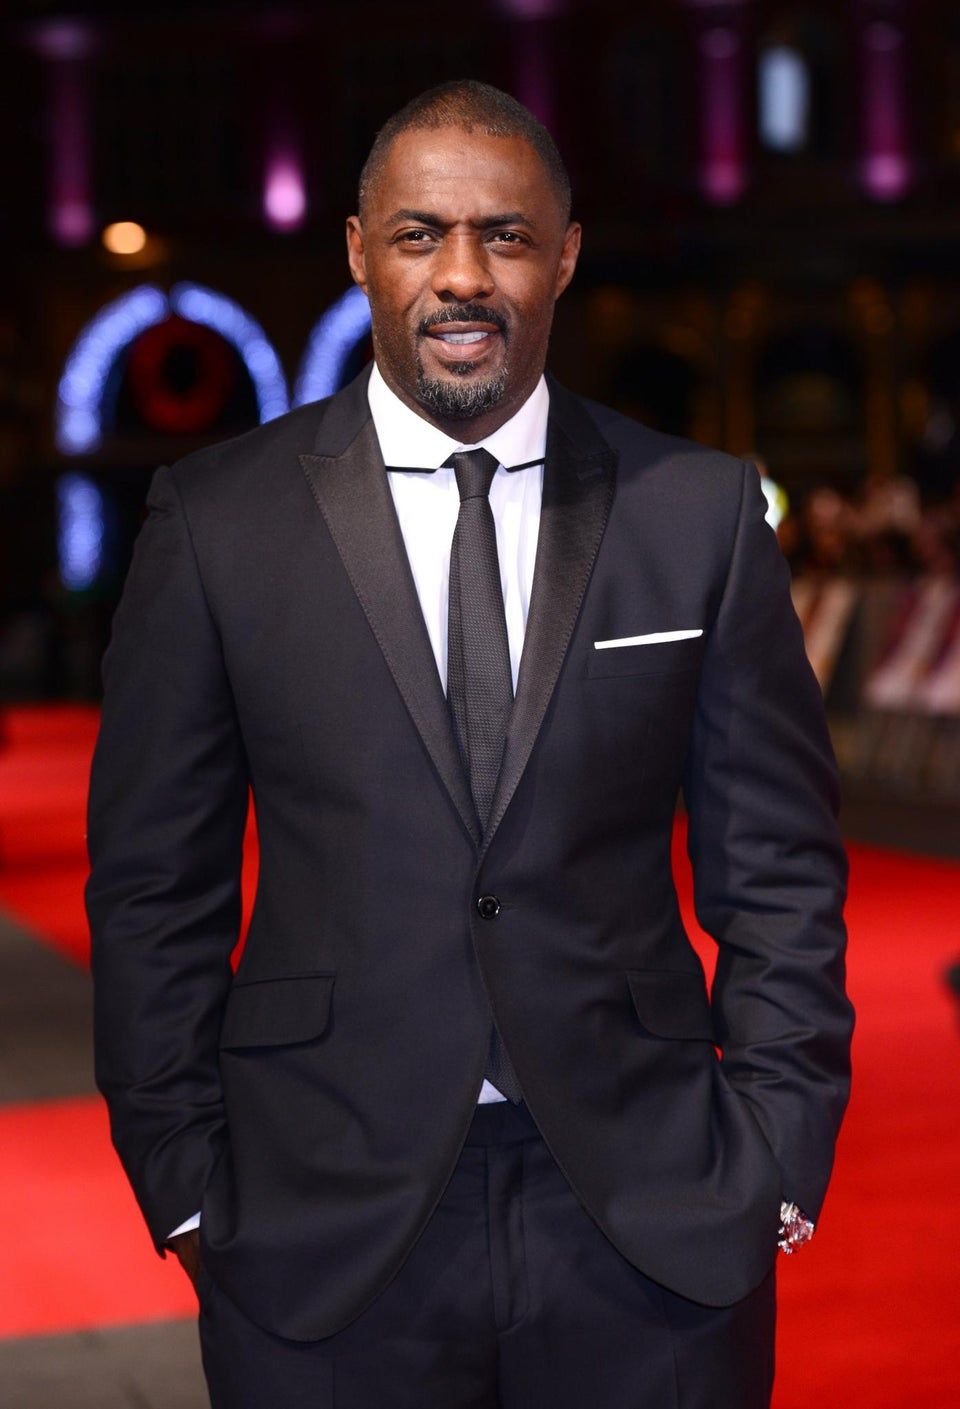 Is Idris Elba Handsome Enough to Play James Bond?